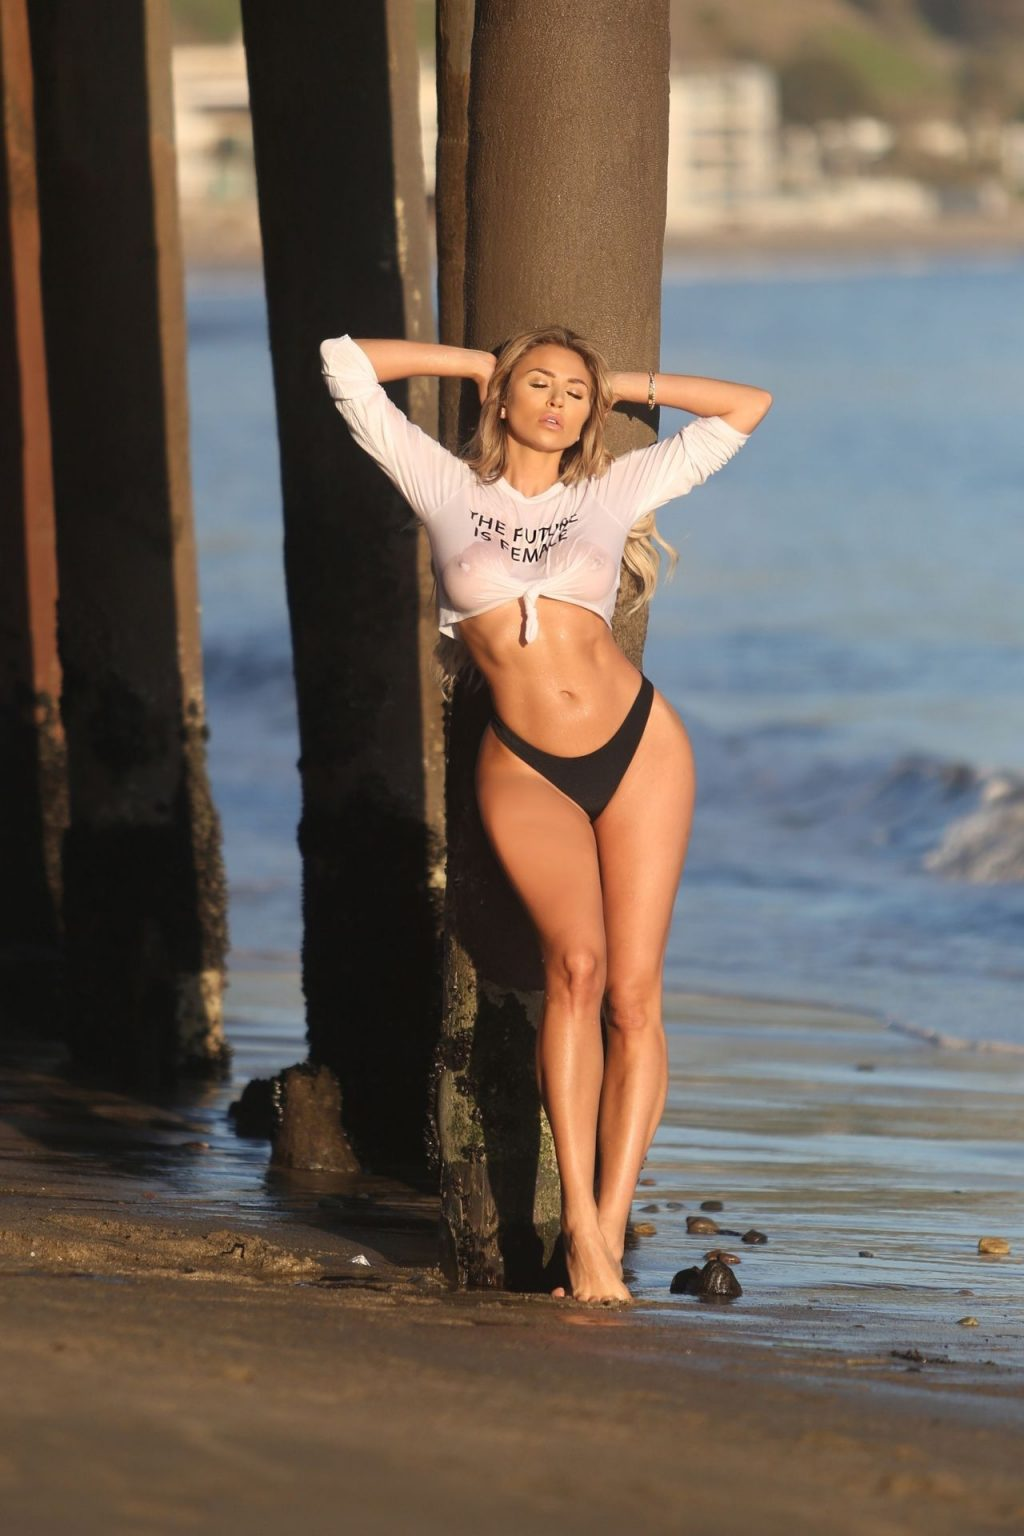 Khloe Terae Joins The No Bra Club as She Poses in a Wet T-shirt on the Beach (47 Photos)